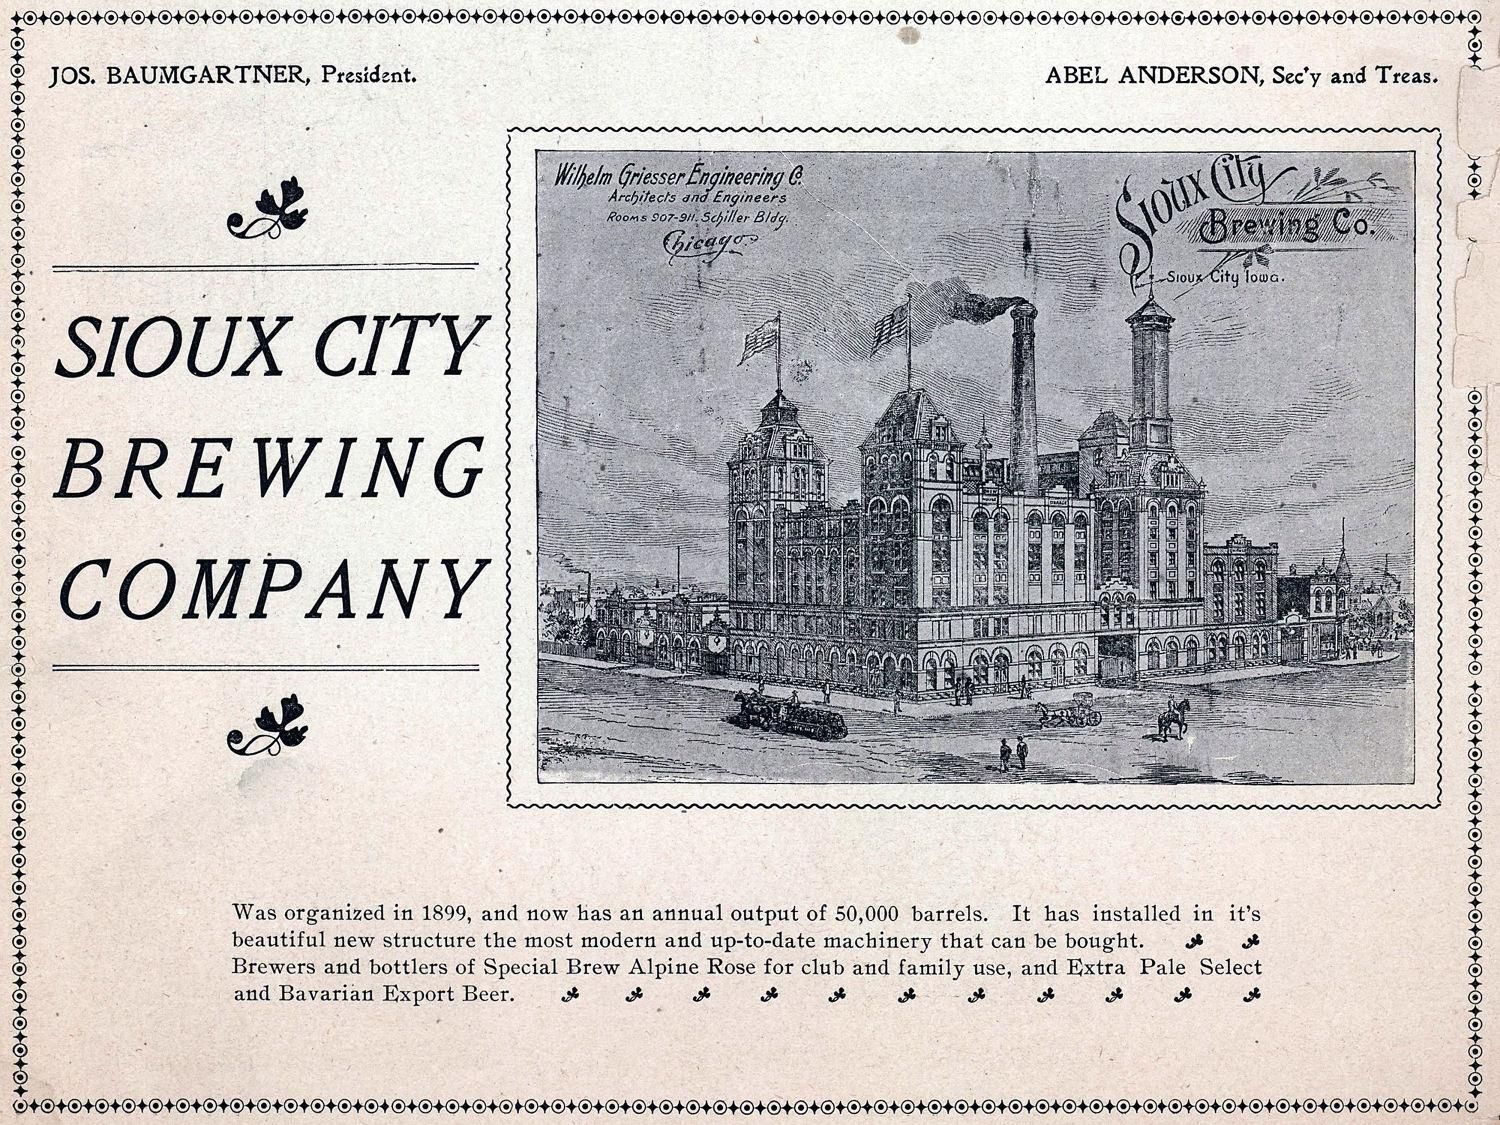 Brew Brief History Of Sioux City Breweries Sioux City Sioux City Iowa Sioux